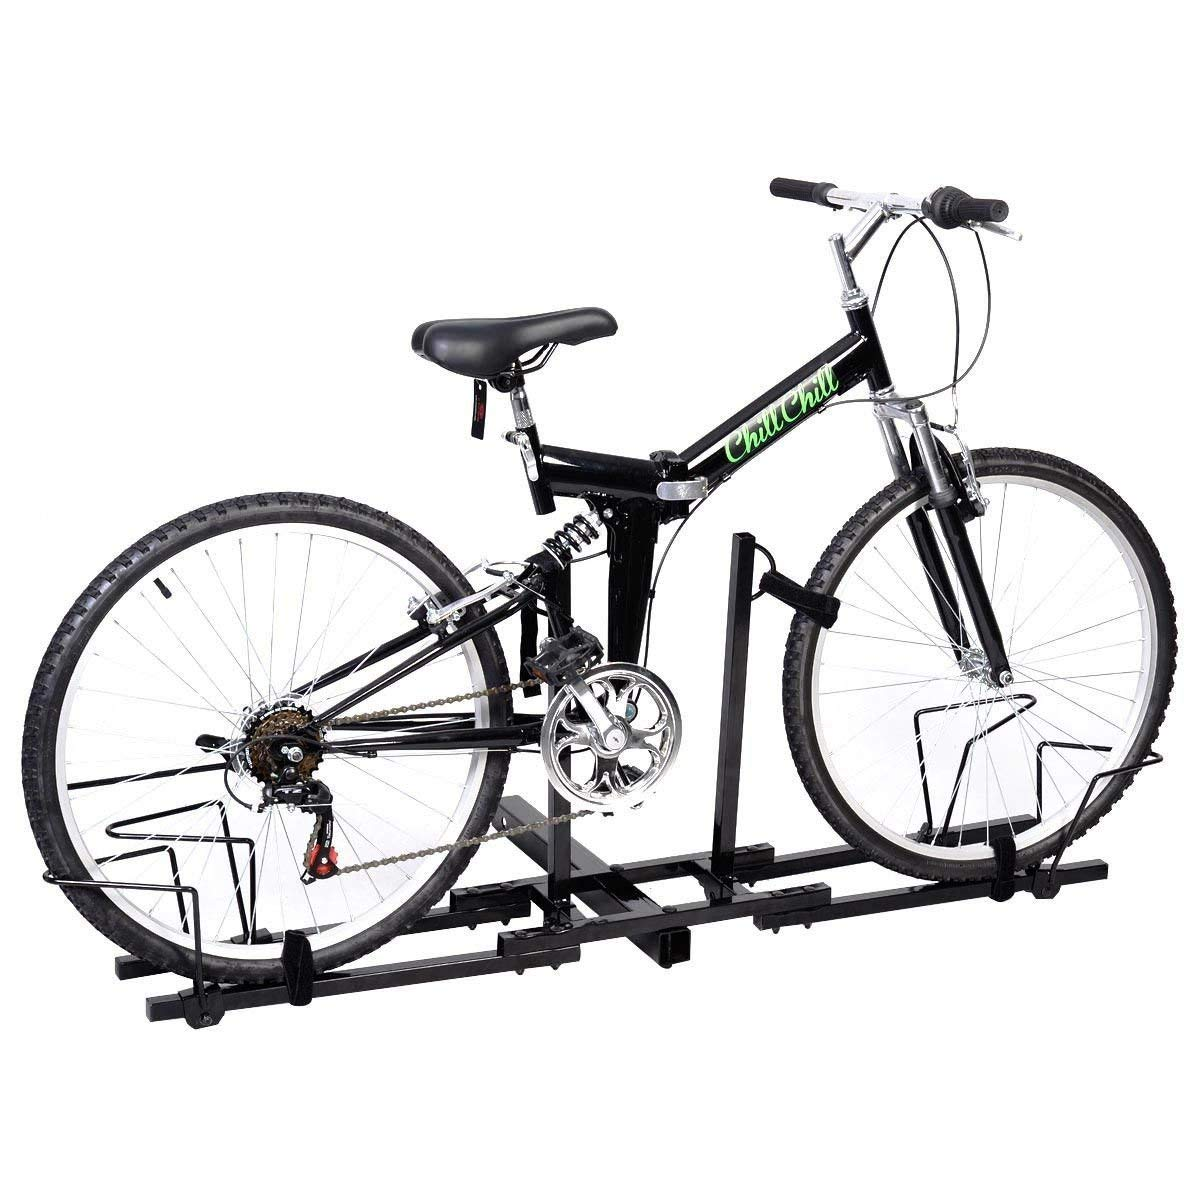 """CDM product New Upright 2 Mountain Bike Carrier Hitch Mount Bicycle Rack 2"""" Rear for SUV Van Truck Bike Rack big image"""